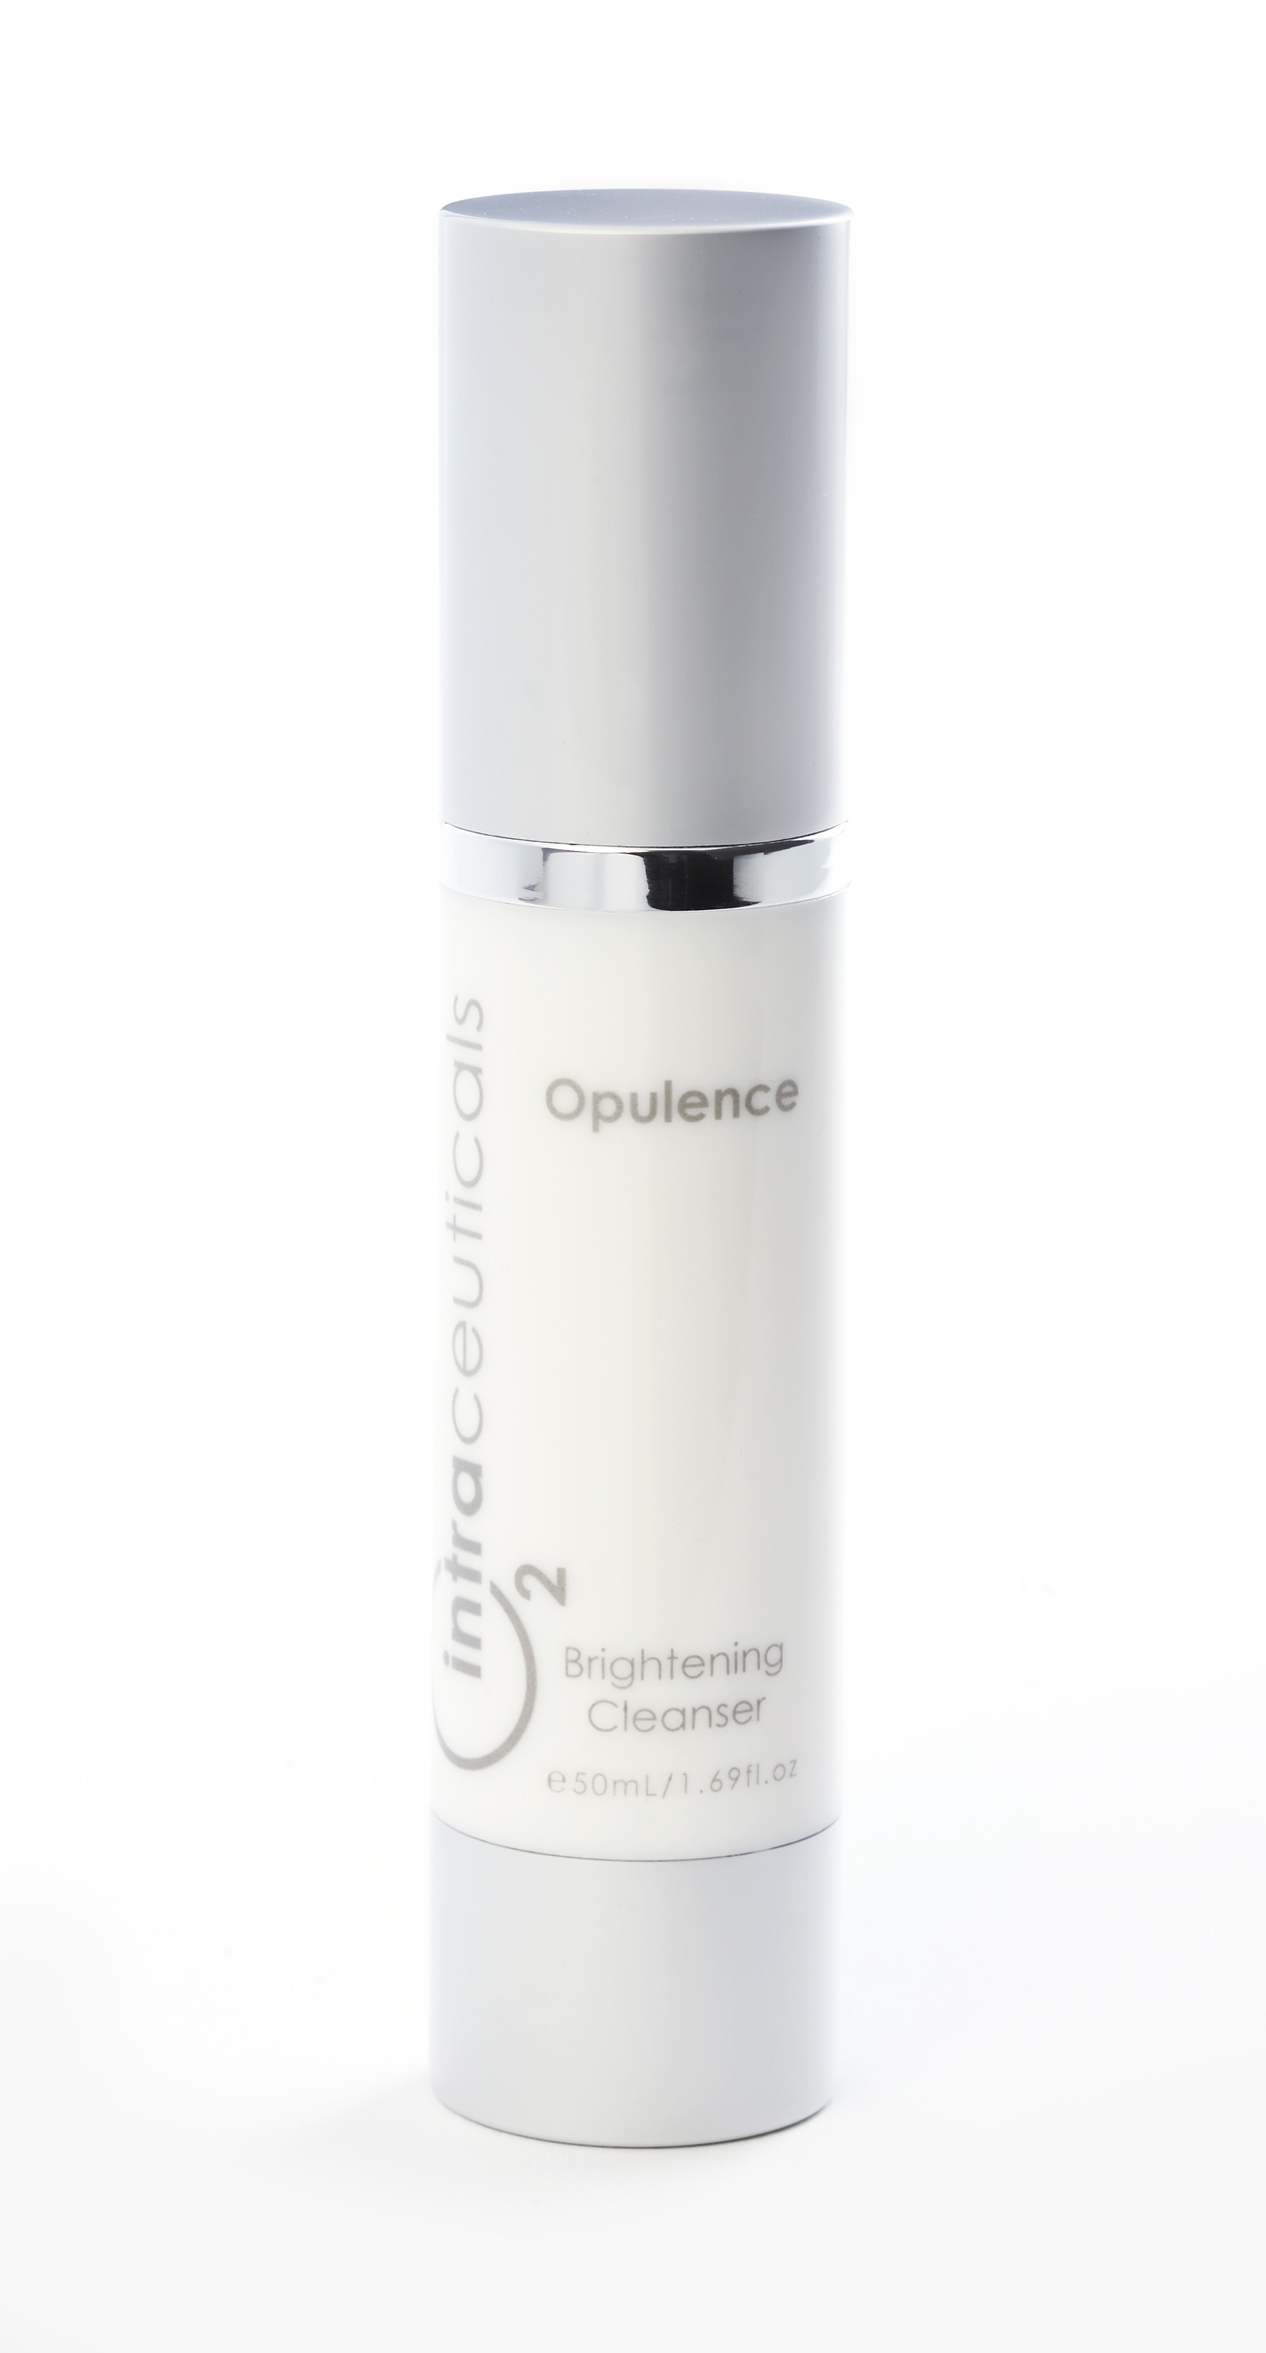 Product Review: Rejuvenation Treatment For The Skin?